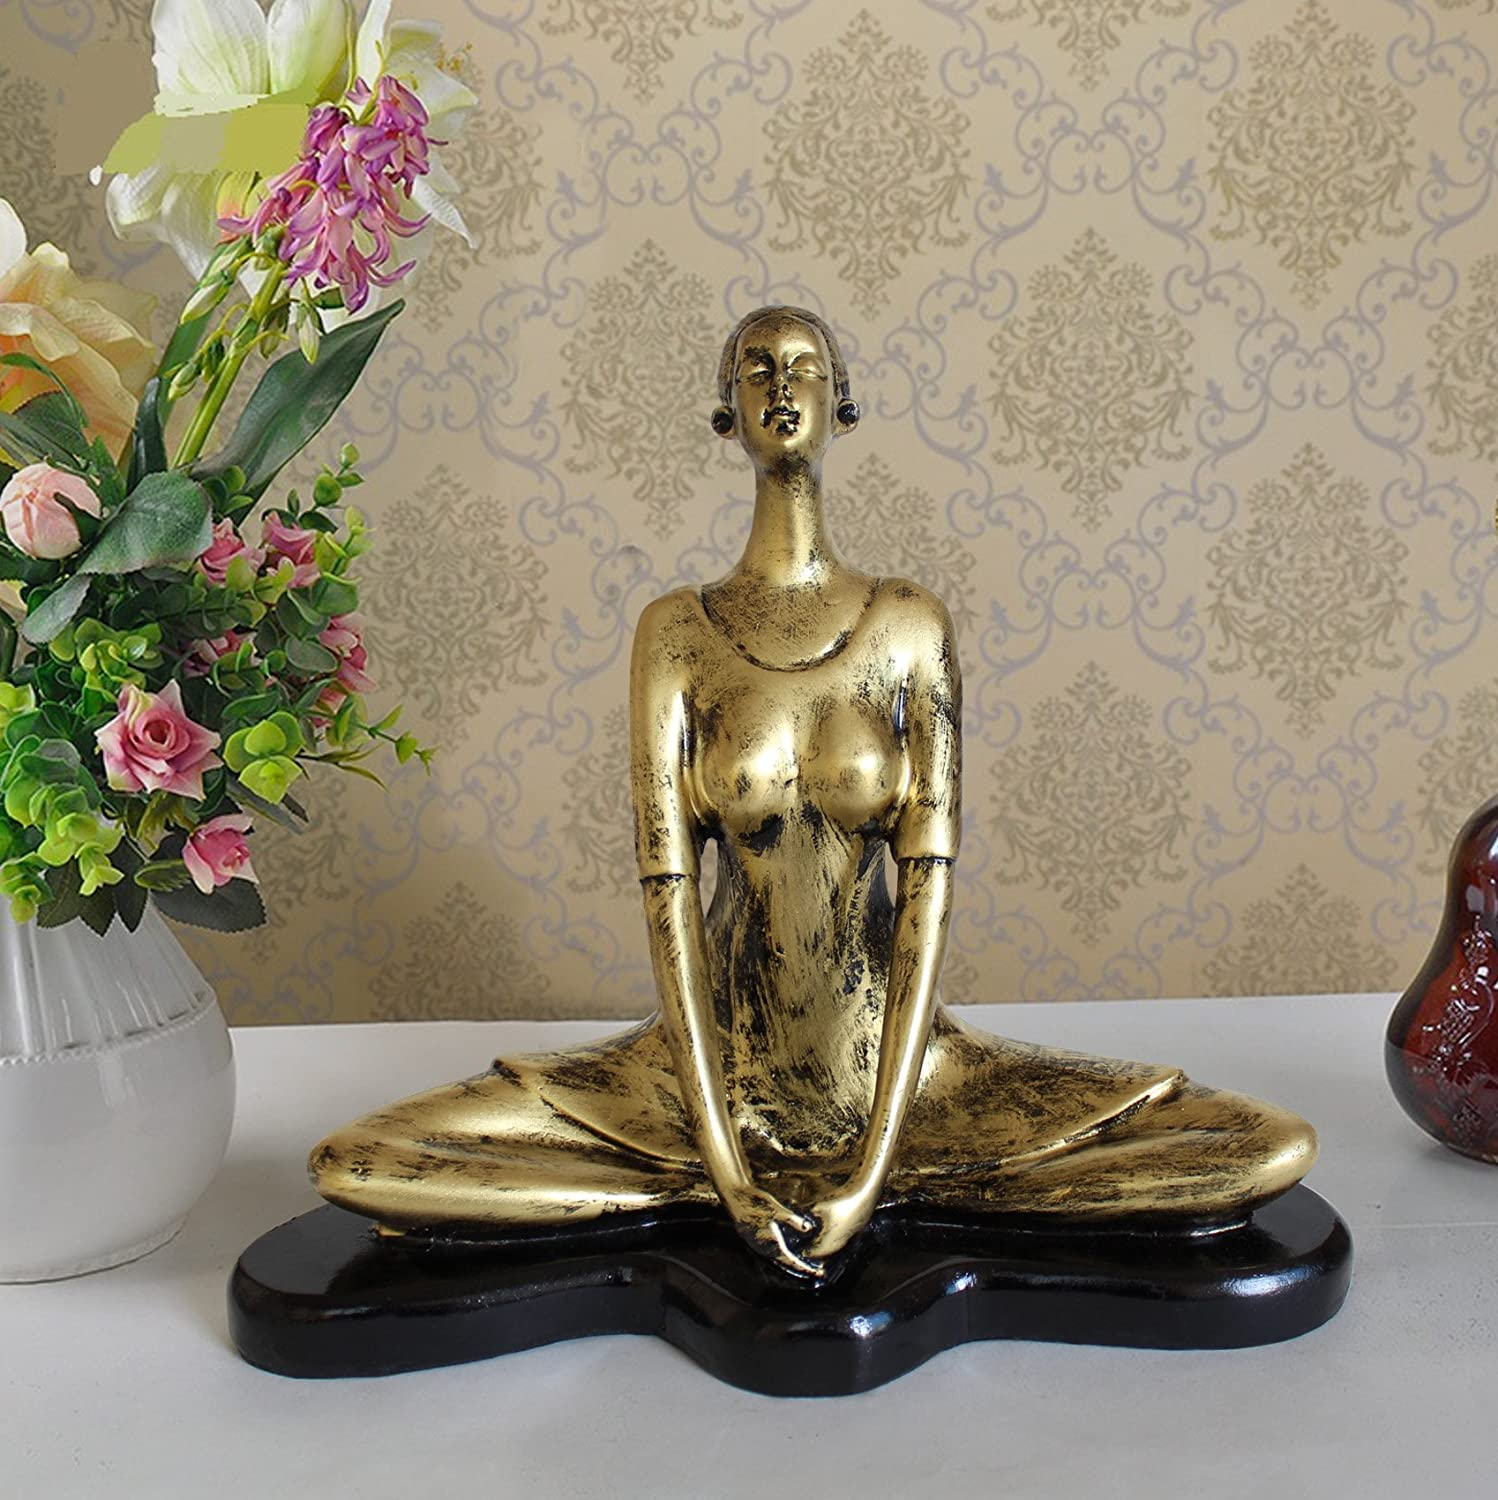 . TIED RIBBONS Yoga Lady Showpiece Outdoor Decorative Items in Garden  Sculptures Showpiece Statue Figurines Items for Living Room Drawing Room  Bed Room